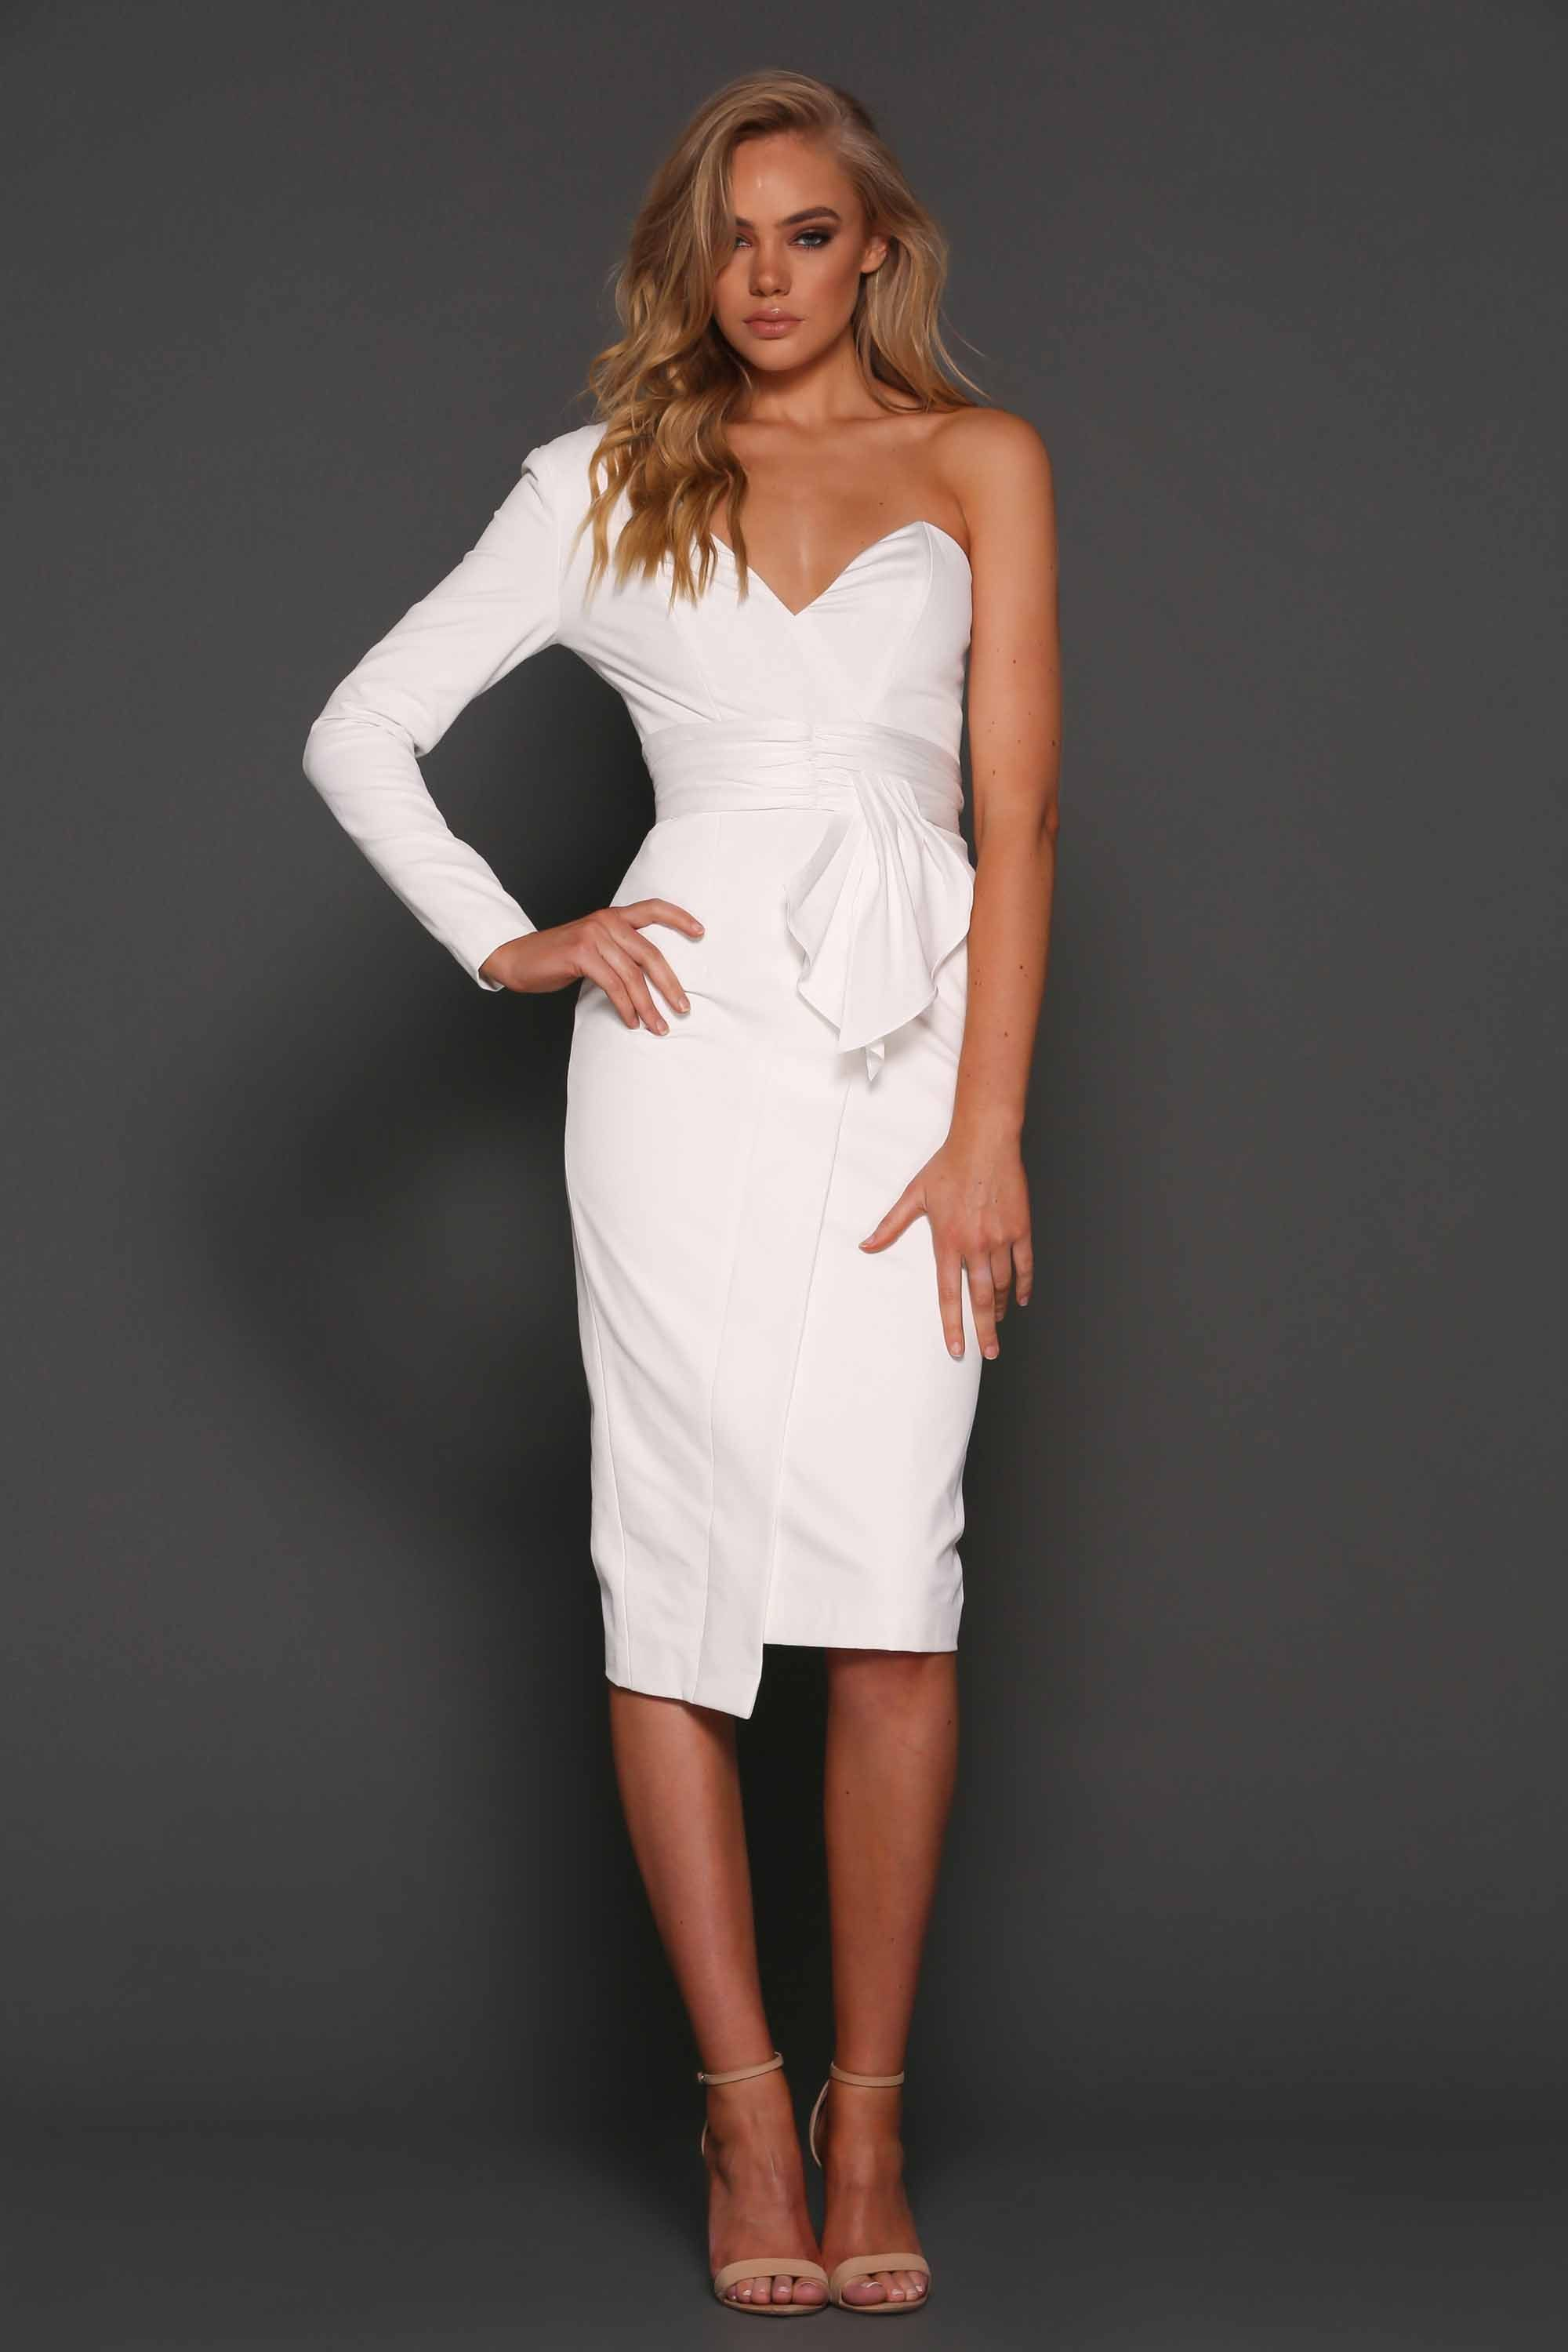 Wedding Rehearsal Dress.Dolores White Things To Wear In 2019 Engagement Party Dresses